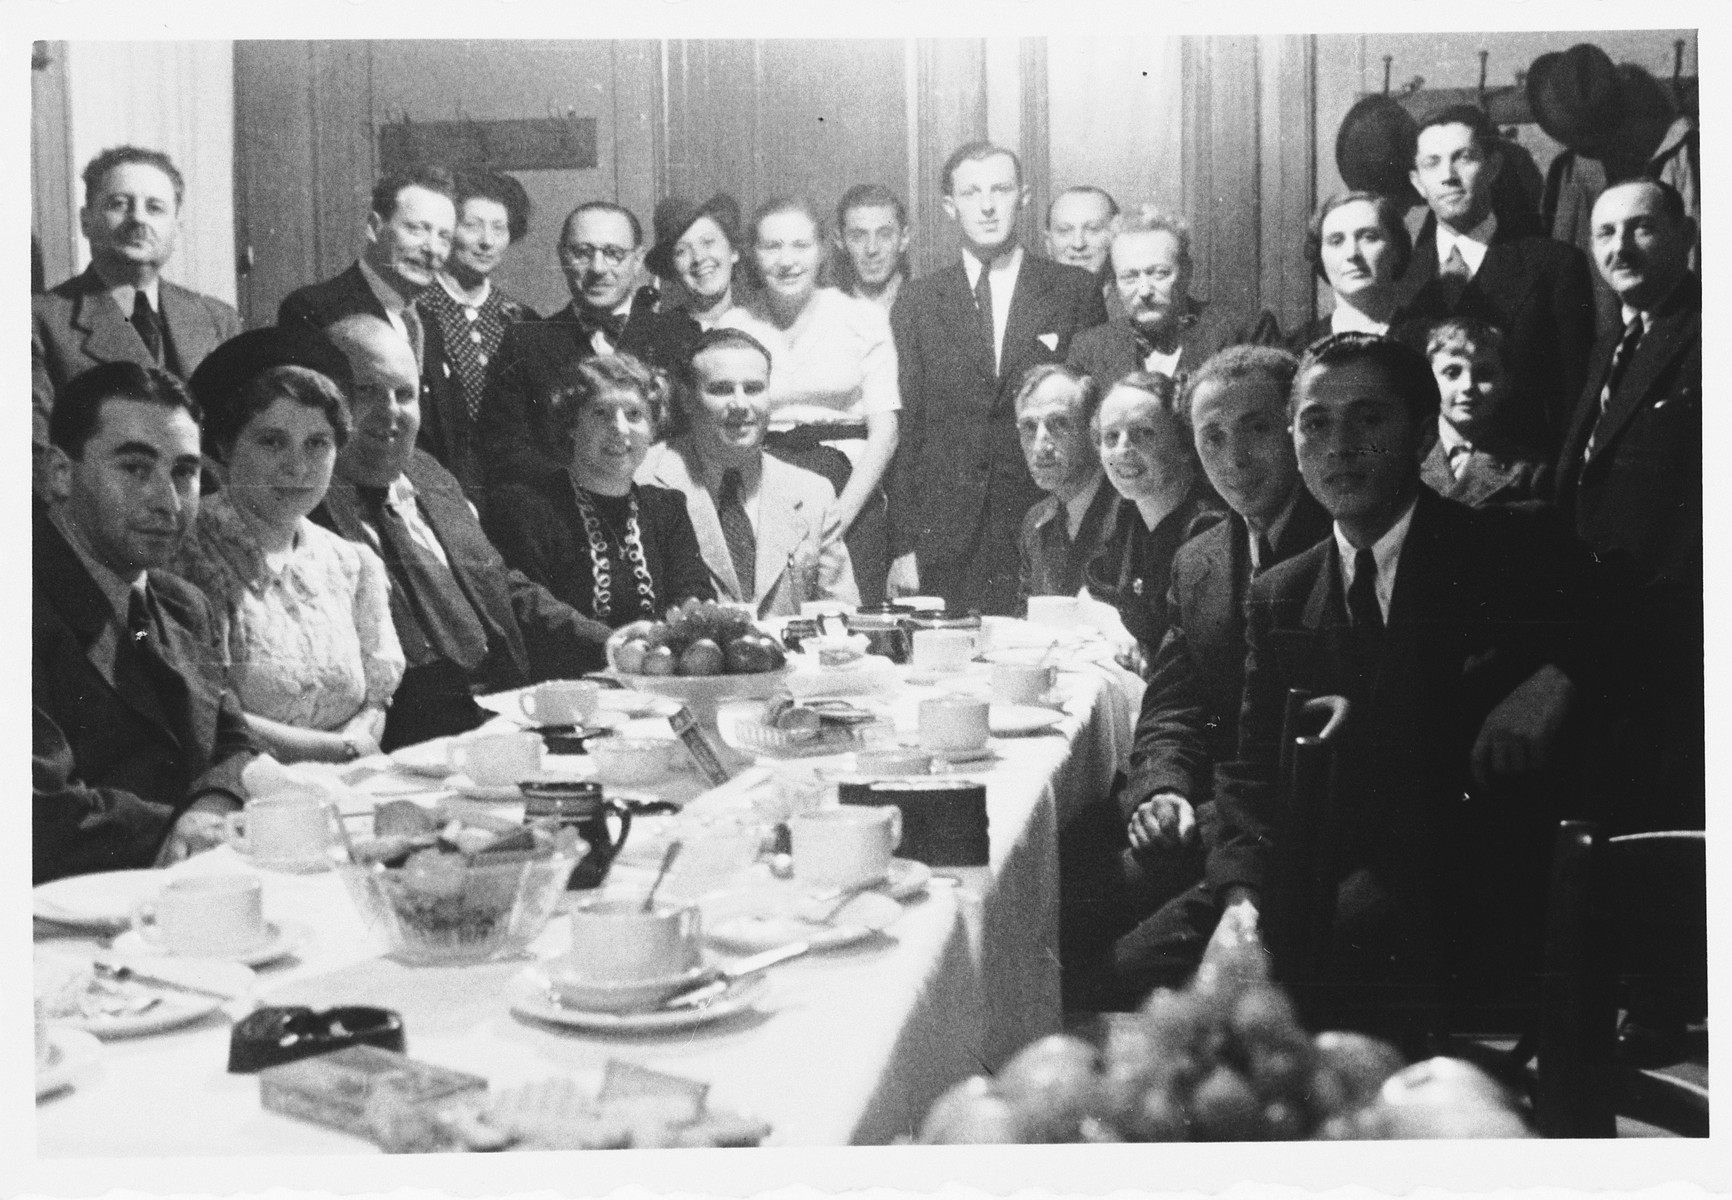 Members of the Luxembourg Jewish community pose with Jewish refugees from the Third Reich around a long dining table at a gathering sponsored by the ESRA Jewish social welfare organization.